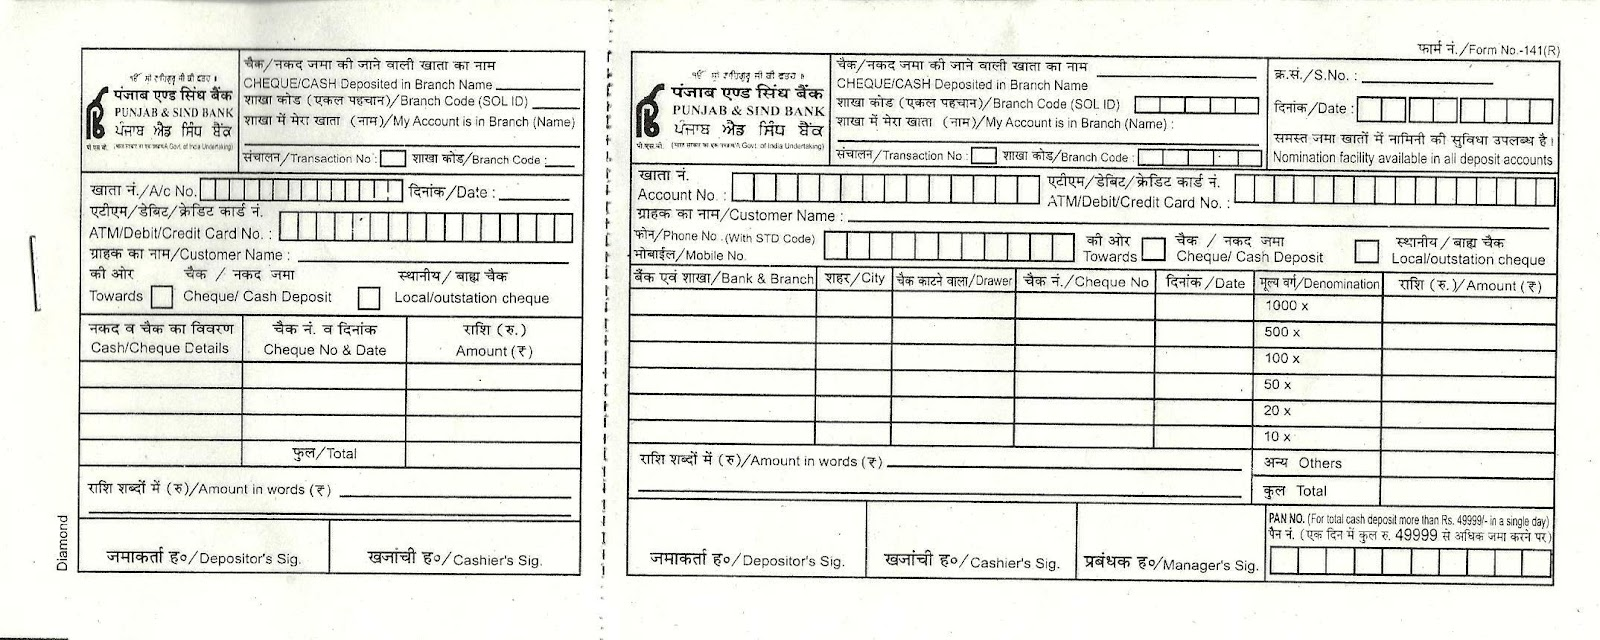 Lovely Indian Bank Pay In Slips For Cash/Instrument Depositions  Pay In Slips